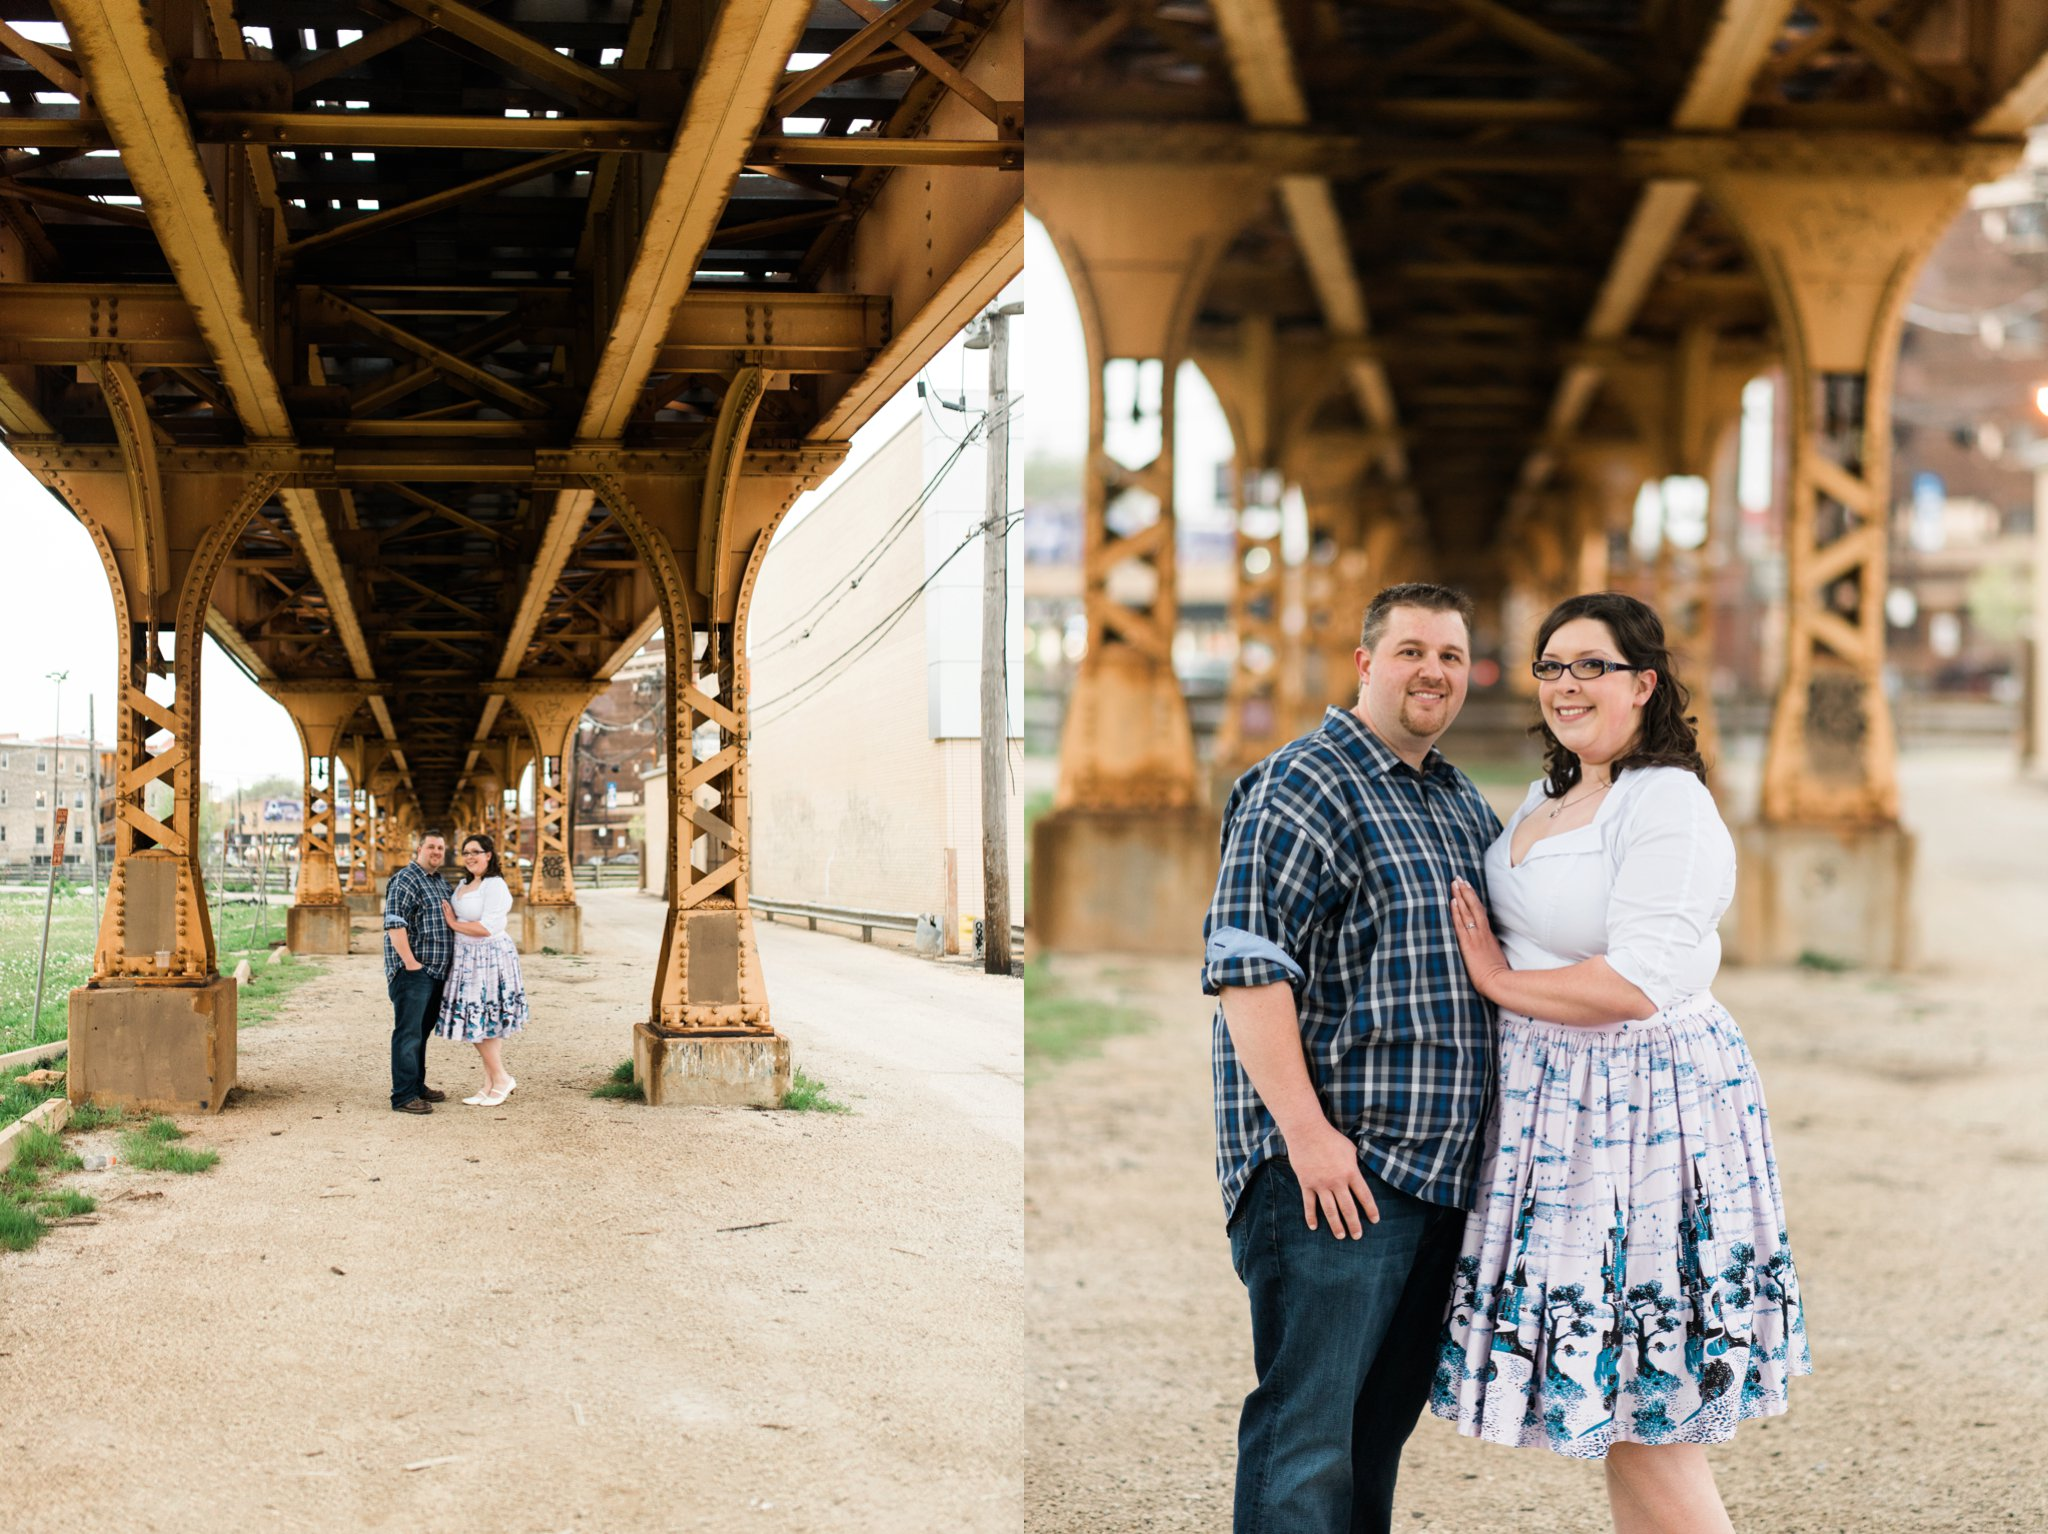 Logan-Square-Engagement-Photography-143.jpg